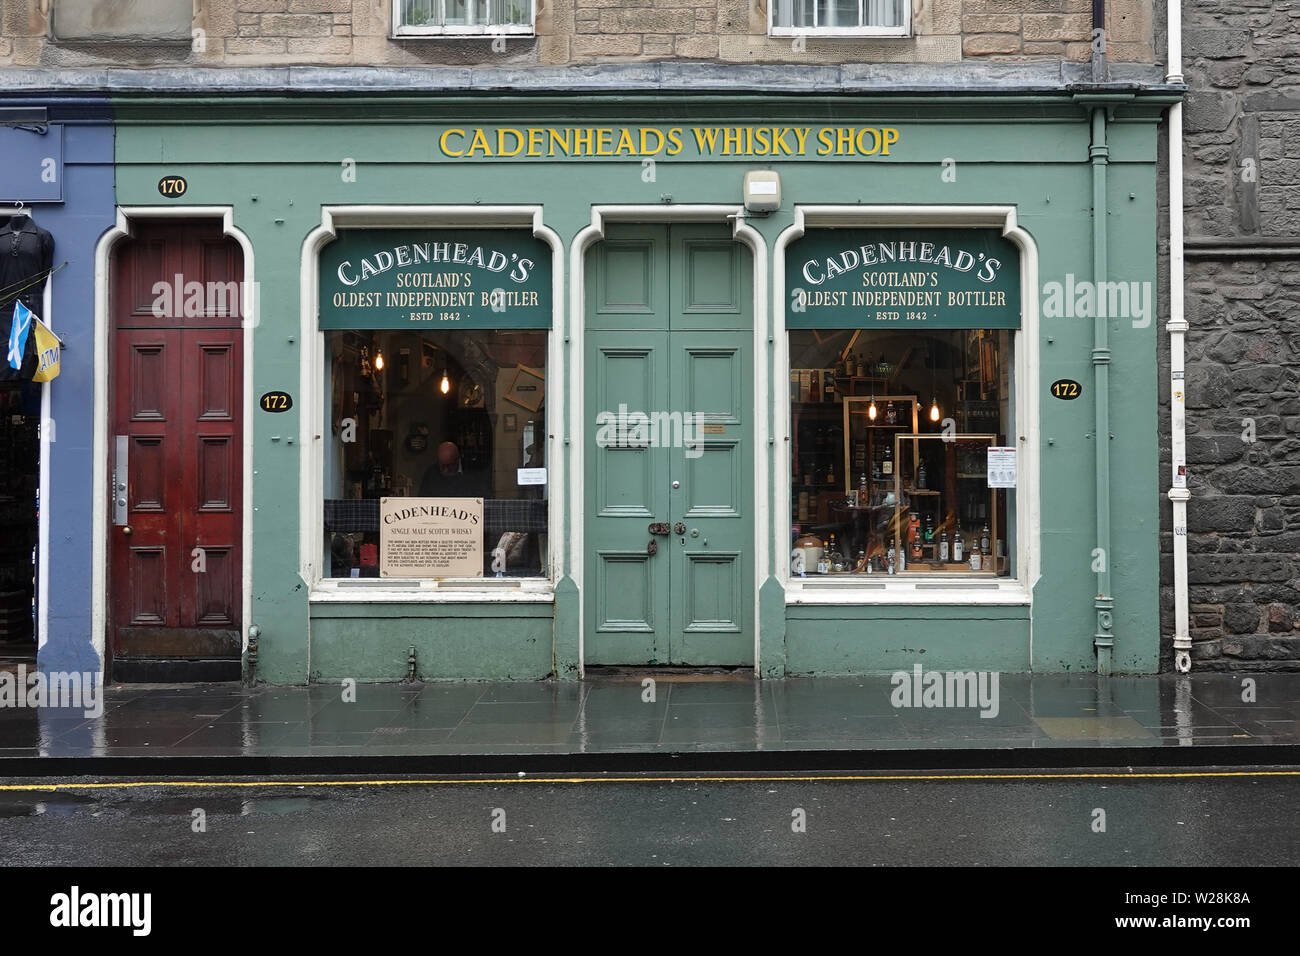 Edinburgh, Scotland - June 13, 2019: The storefront for Cadenhead's Whisky Shop, established in 1842, is shown along the Royal Mile. Stock Photo